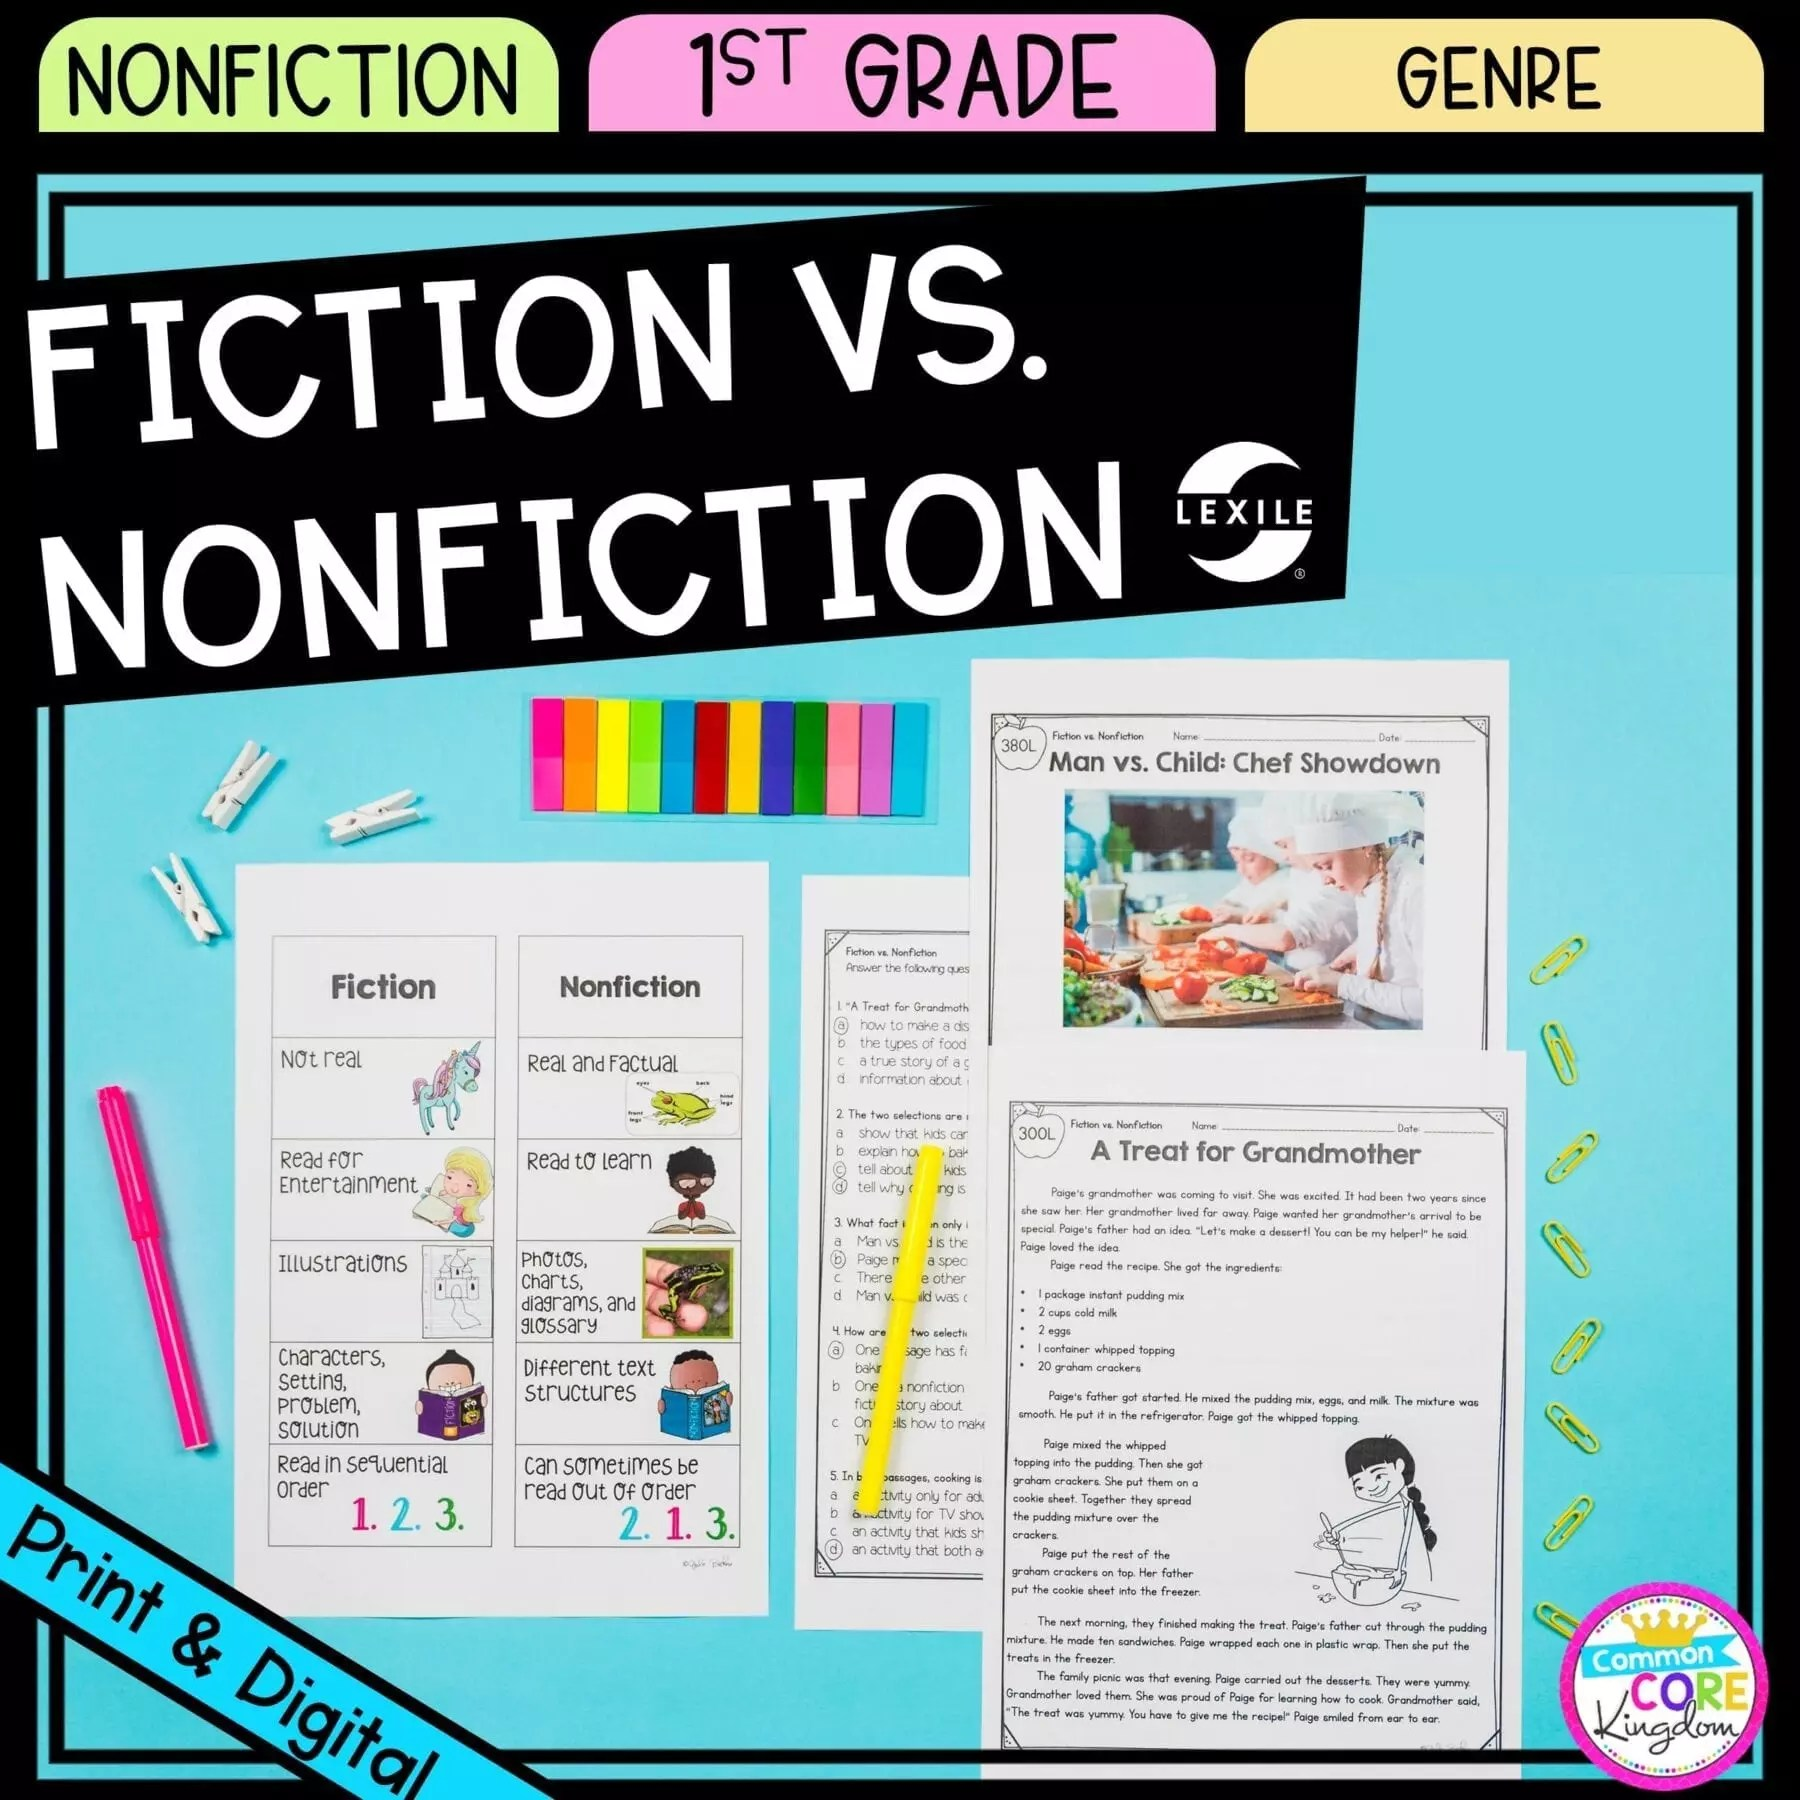 hight resolution of Fiction vs. Nonfiction - 1st Grade - Google Distance Learning   Common Core  Kingdom